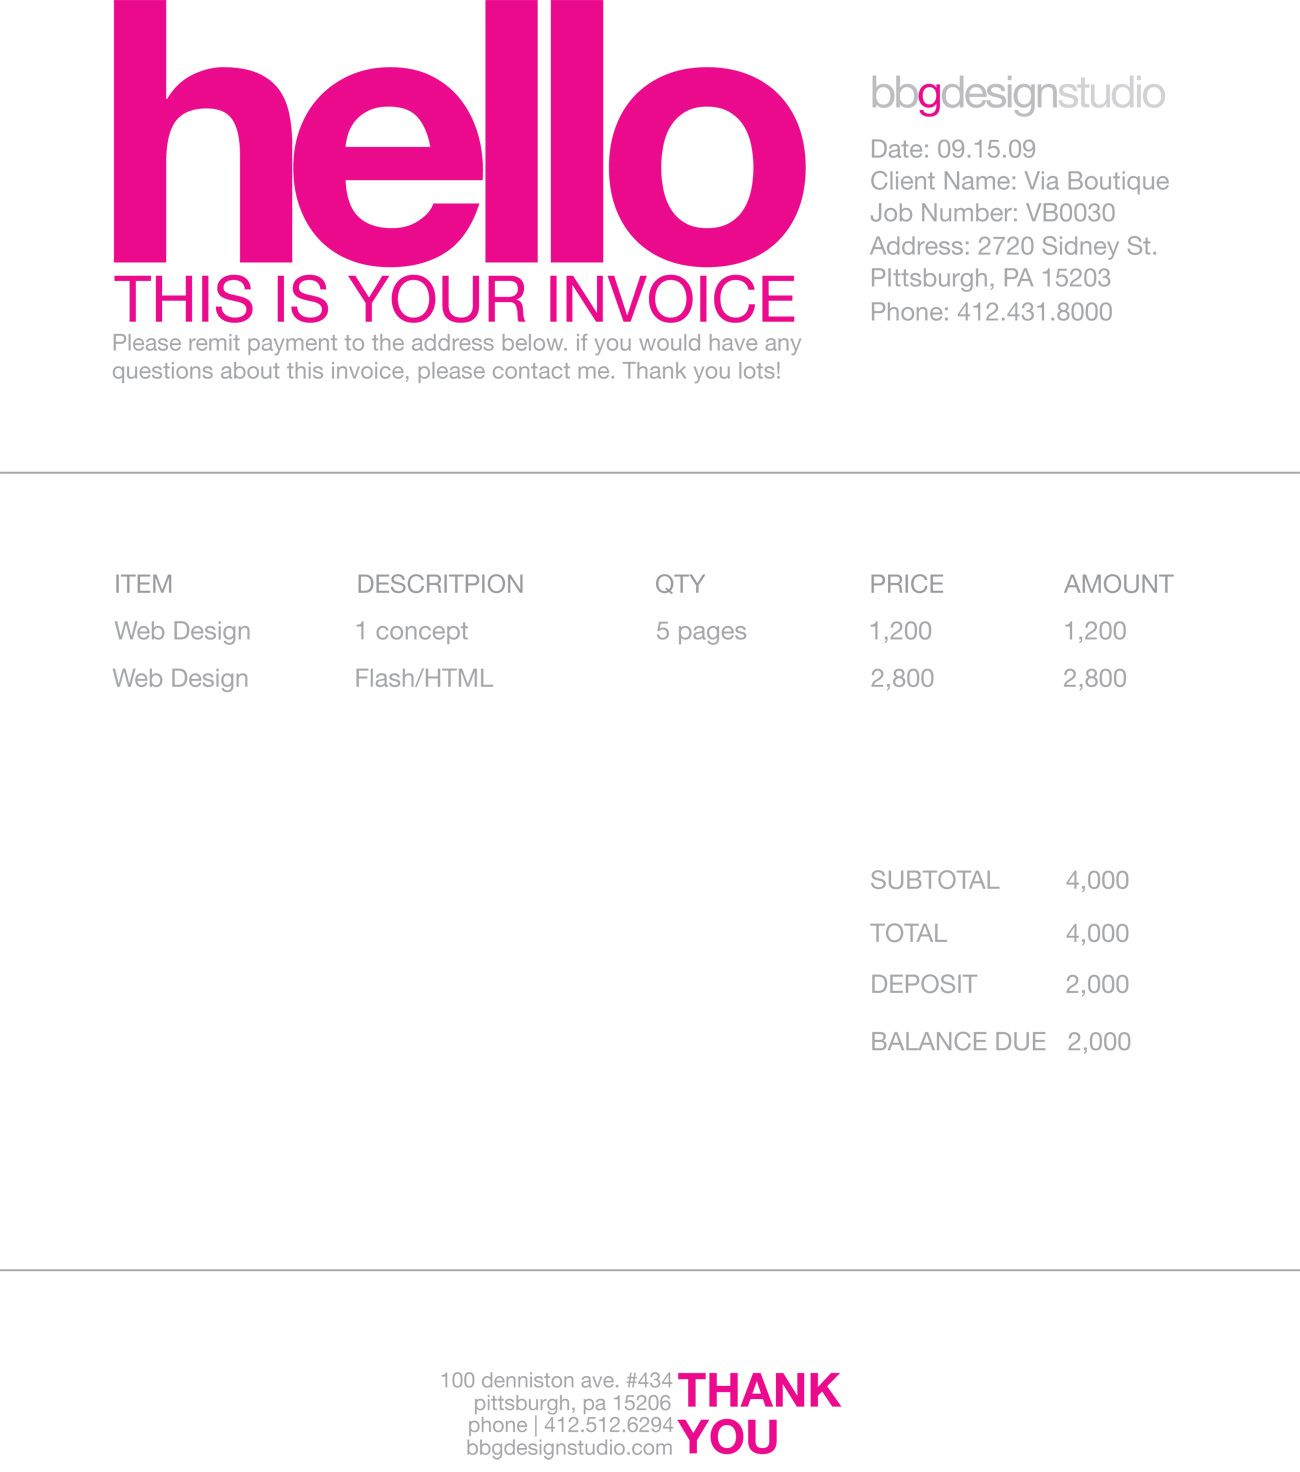 Hius  Picturesque  Images About Invoice Design On Pinterest With Luxury  Mustang Gt Invoice Besides Way Invoice Matching Furthermore Ebay How To Send Invoice With Agreeable Invoice Number Definition Also Microsoft Excel Invoice Templates In Addition Copies Of Invoices And Pay Invoices As Well As Customer Invoice Template Additionally Free Business Invoice From Pinterestcom With Hius  Luxury  Images About Invoice Design On Pinterest With Agreeable  Mustang Gt Invoice Besides Way Invoice Matching Furthermore Ebay How To Send Invoice And Picturesque Invoice Number Definition Also Microsoft Excel Invoice Templates In Addition Copies Of Invoices From Pinterestcom